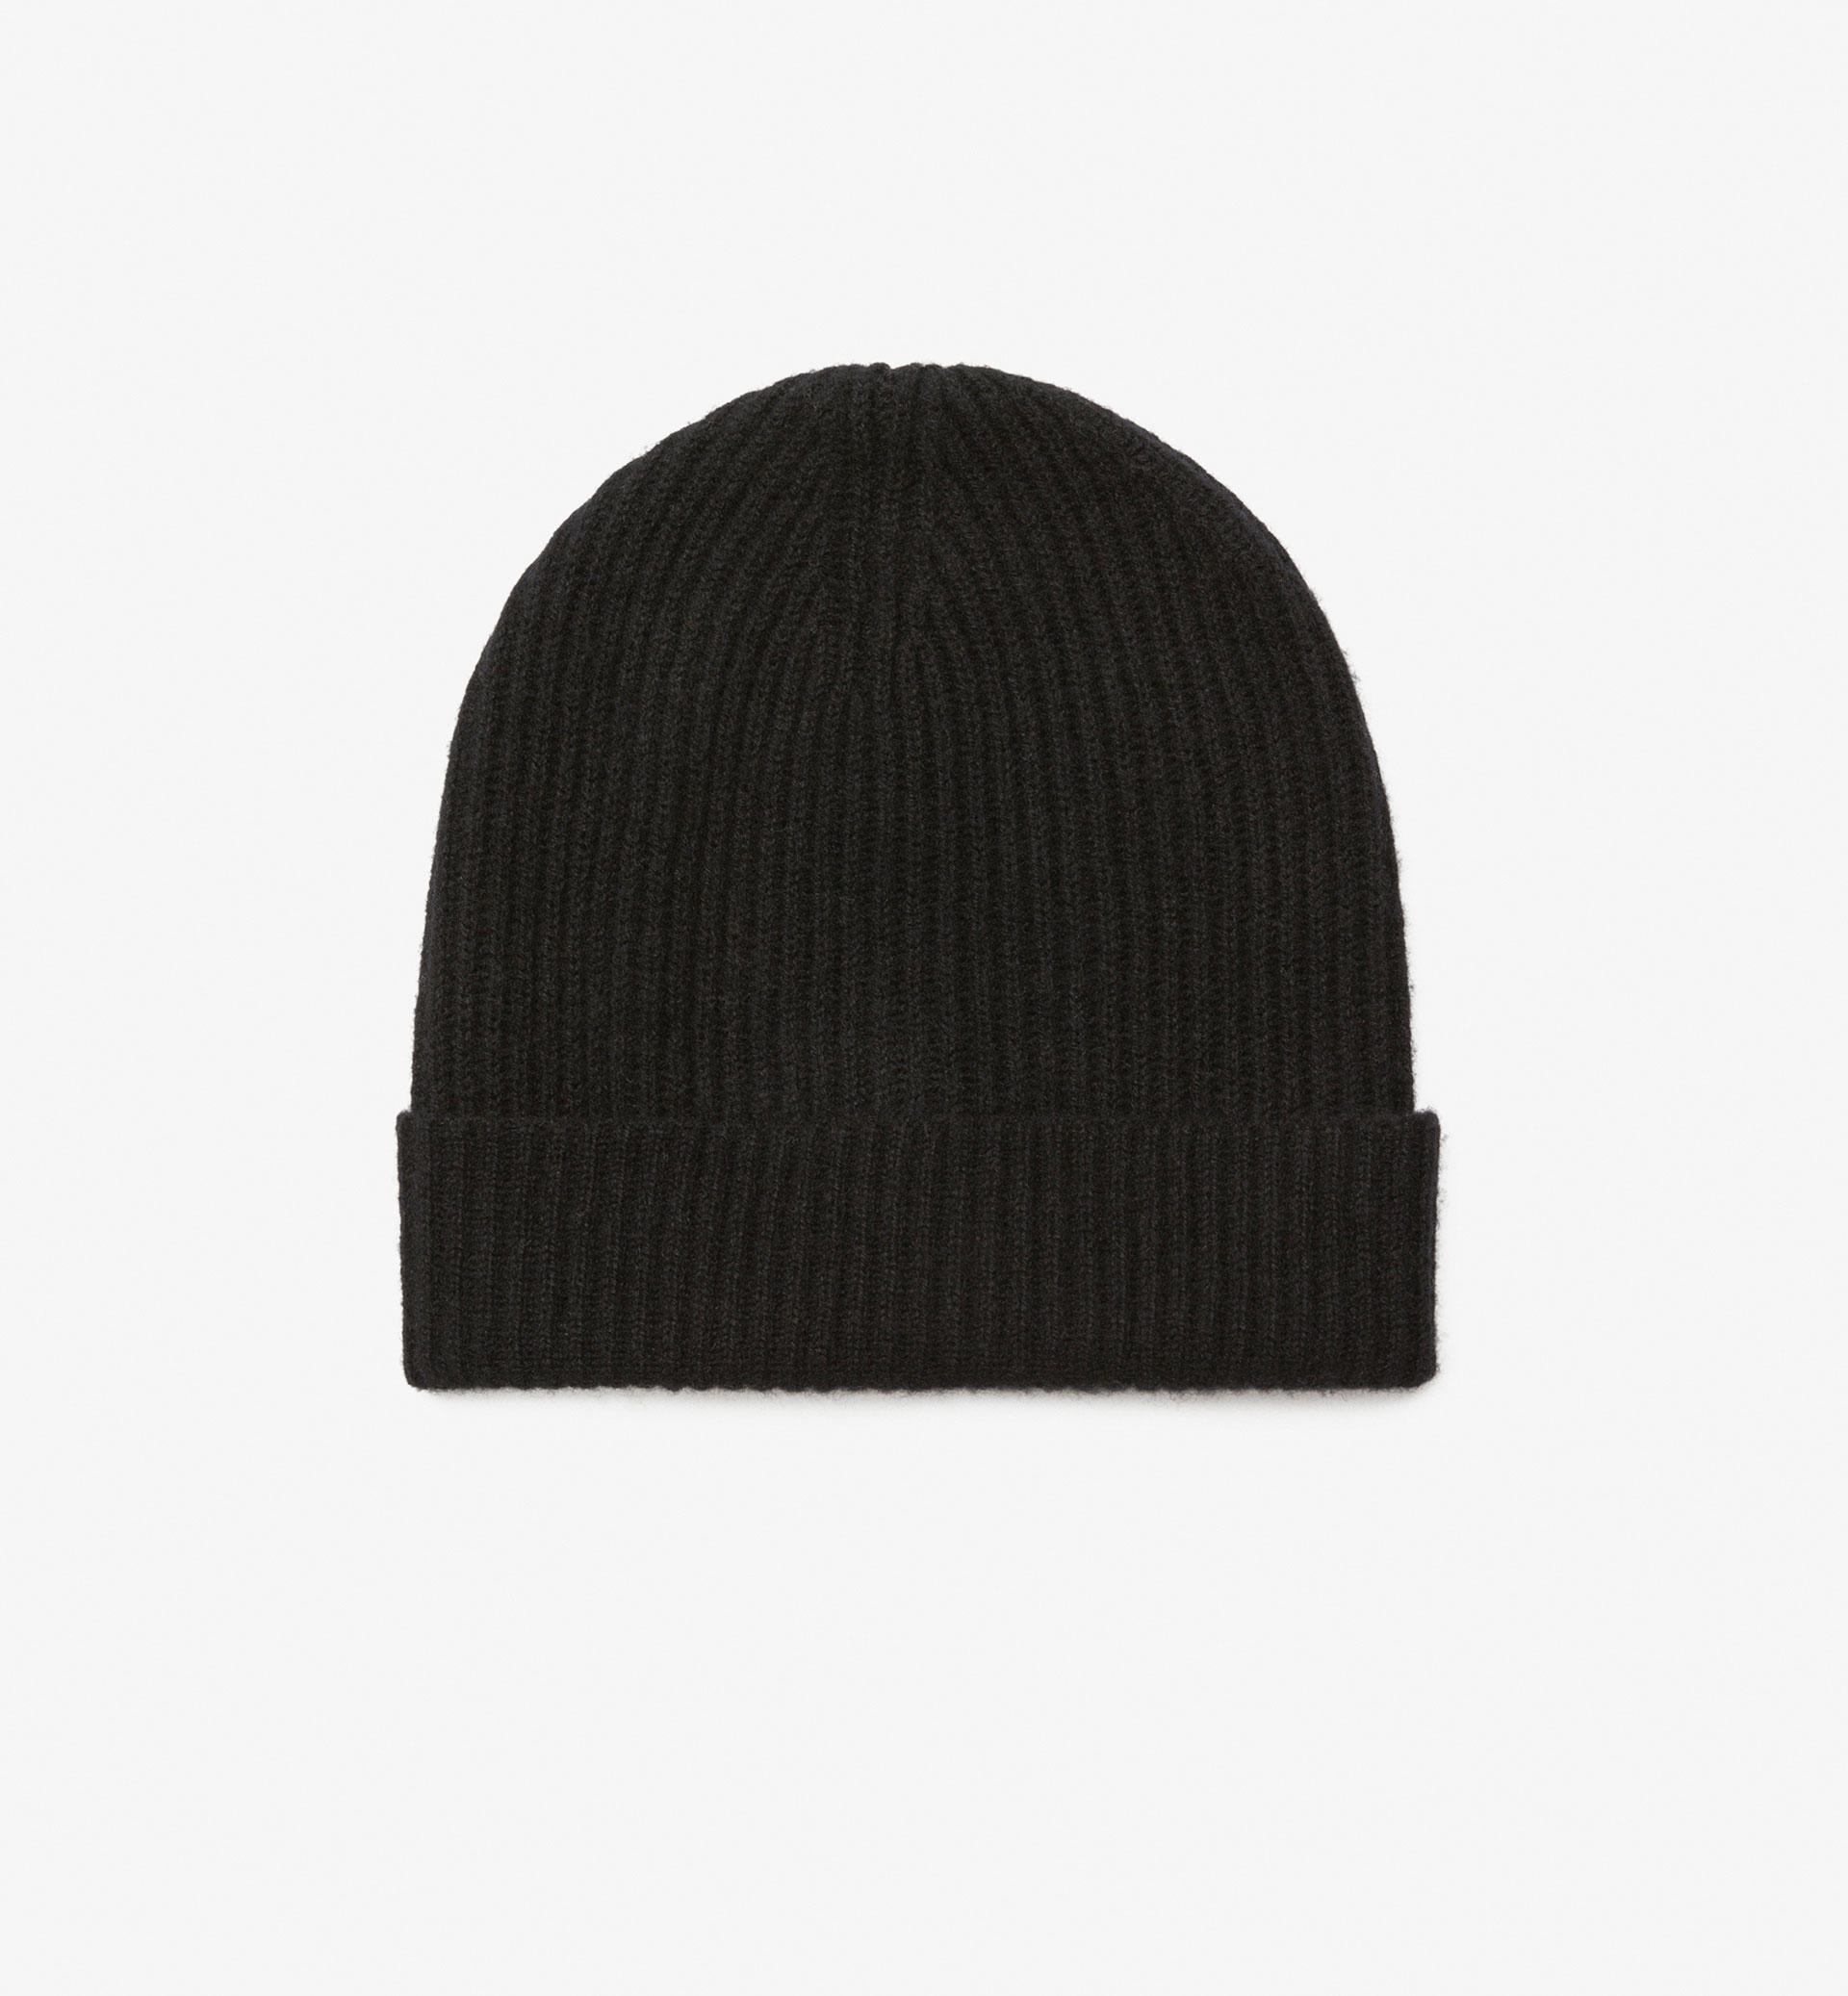 WOOL HAT WITH RIB KNIT DETAIL